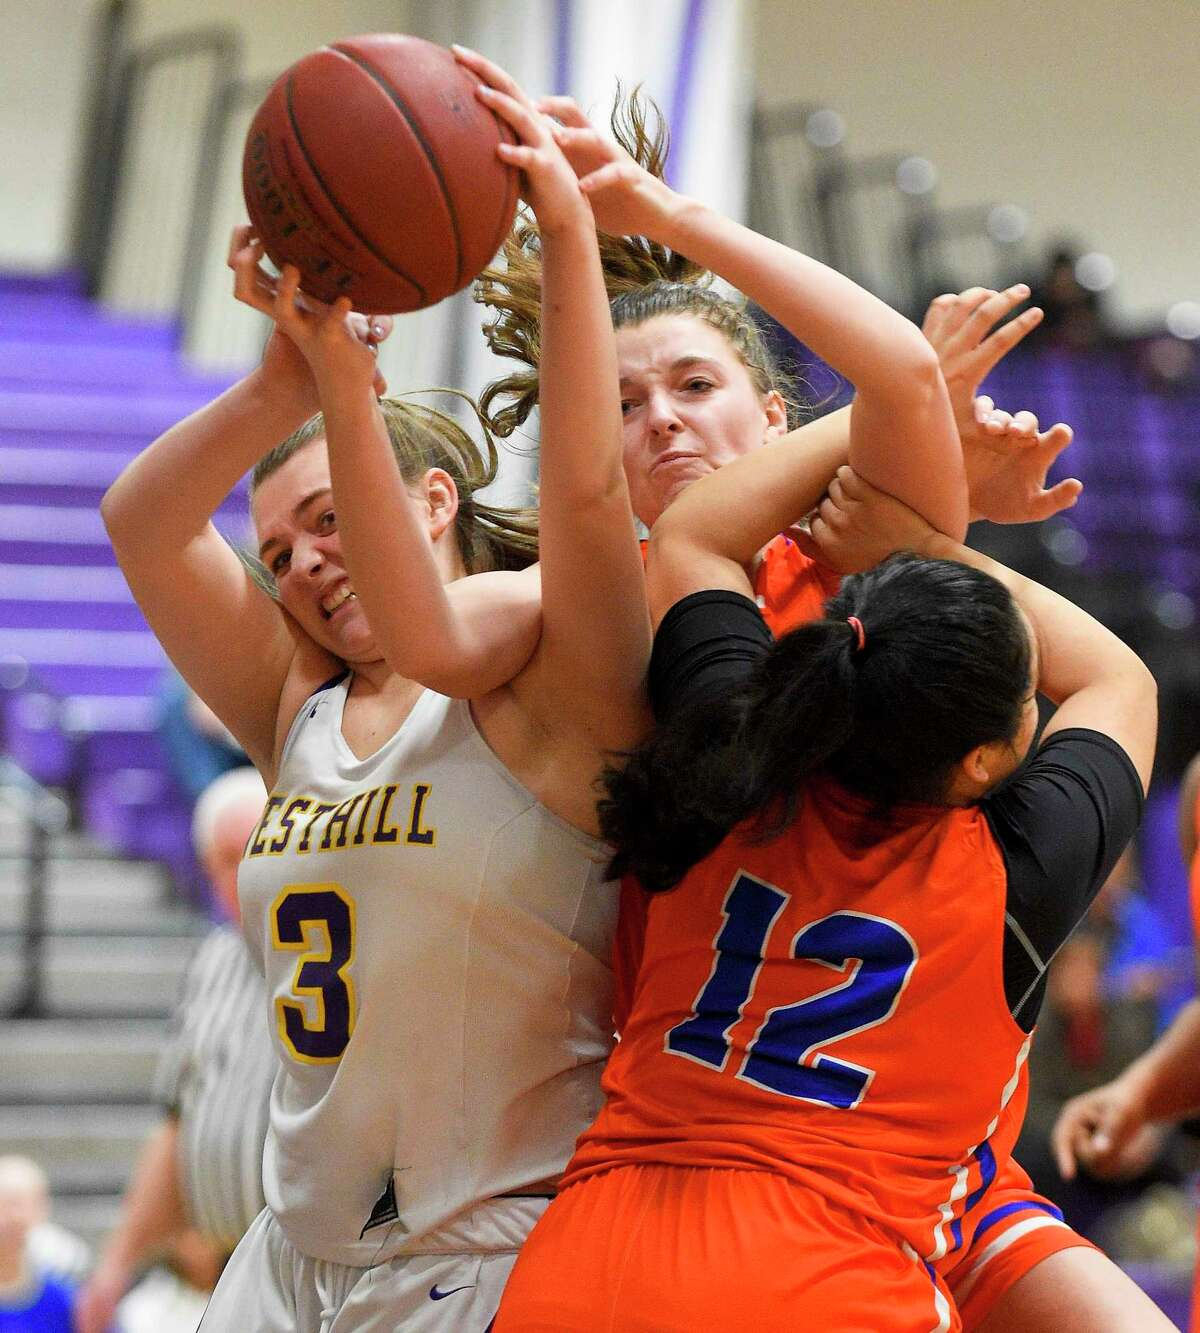 Westhill's Peyton Hackett (3) fights for the rebound with Danbury's Chloe Perreault (3) and Viviana Flores (12) in the first half of an FCIAC girls basketball game in Stamford, Conn. on Jan. 16, 2020. Danbury defeated Westhill 60-35.